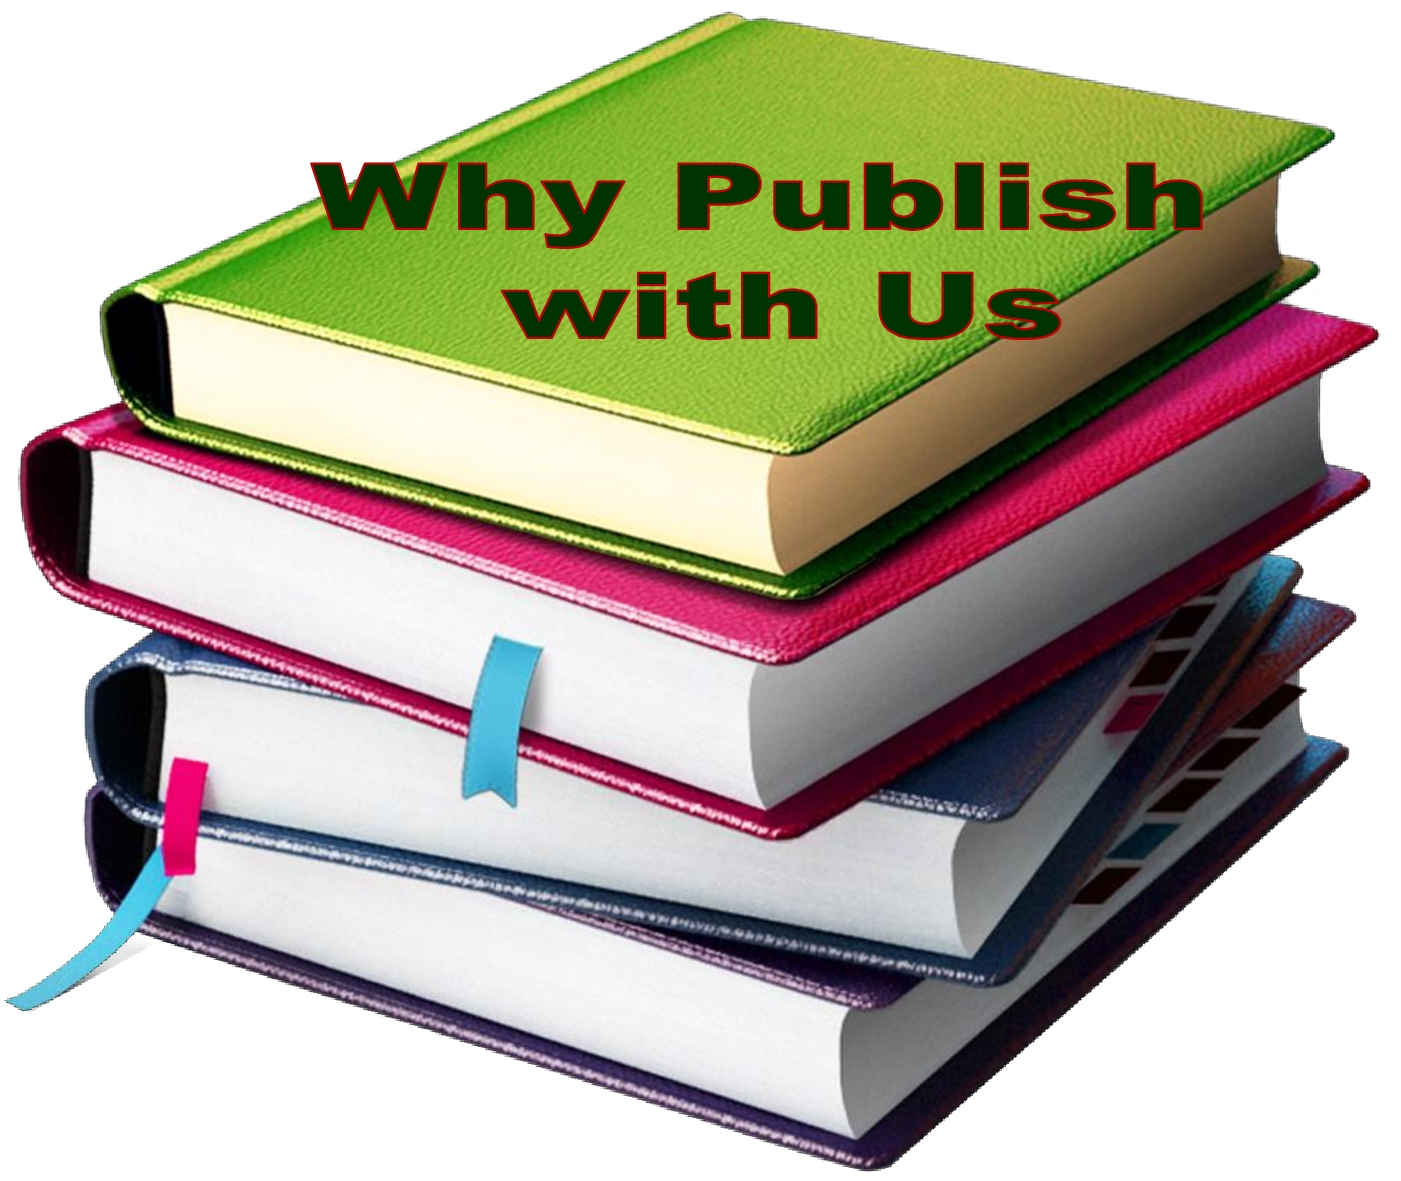 020 Garden6 How To Publish Research Paper In International Journal Free Unusual Pdf Full